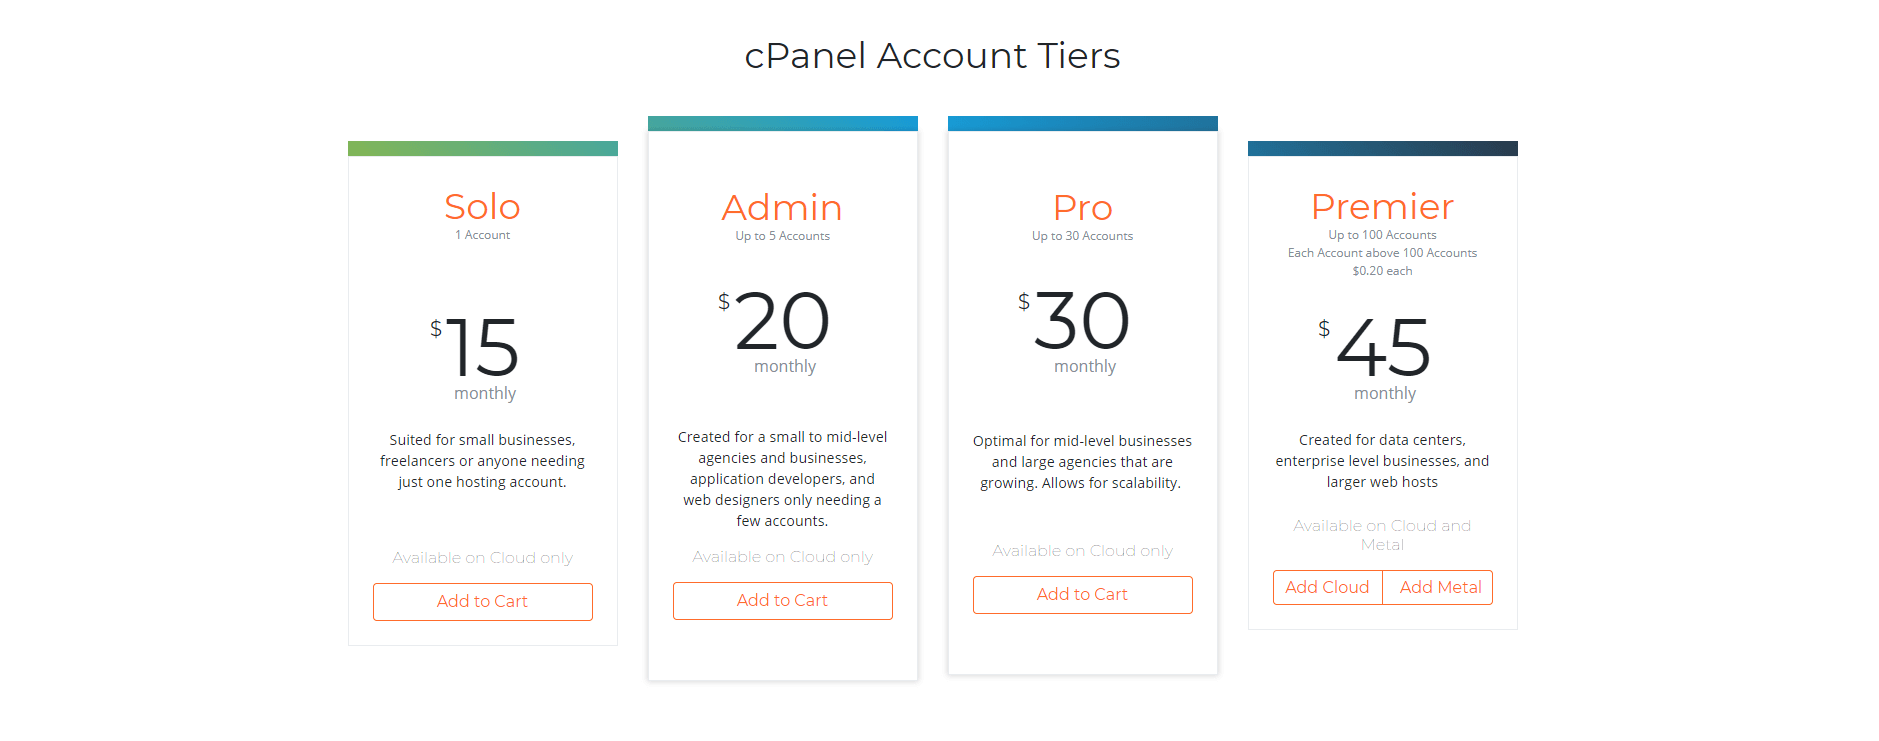 Our take on the cPanel price increase  - CloudCone